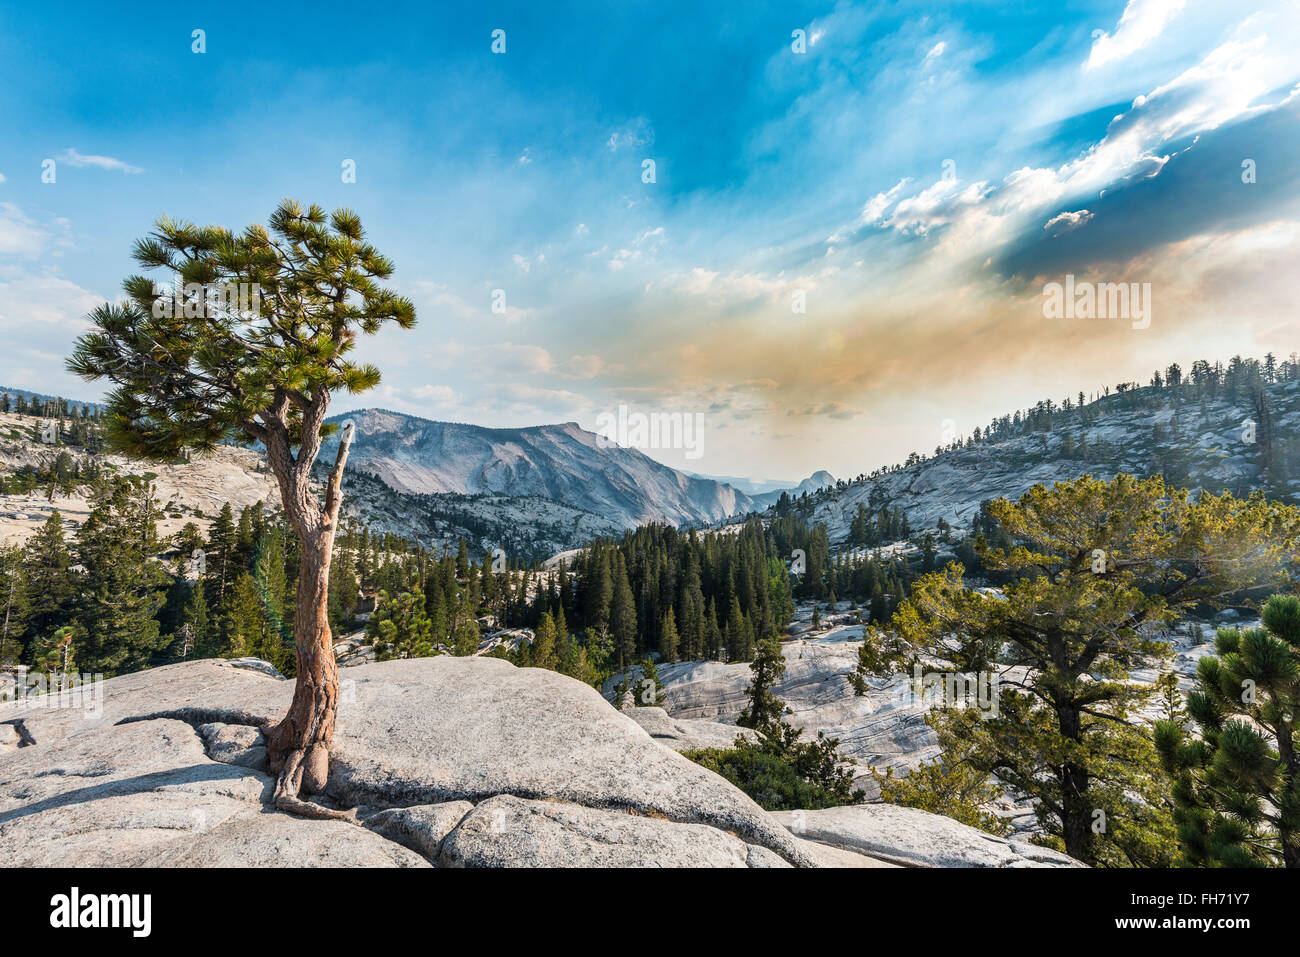 Tree, pine on a rocky plateau at Olmsted Point, Yosemite National Park, California, USA - Stock Image